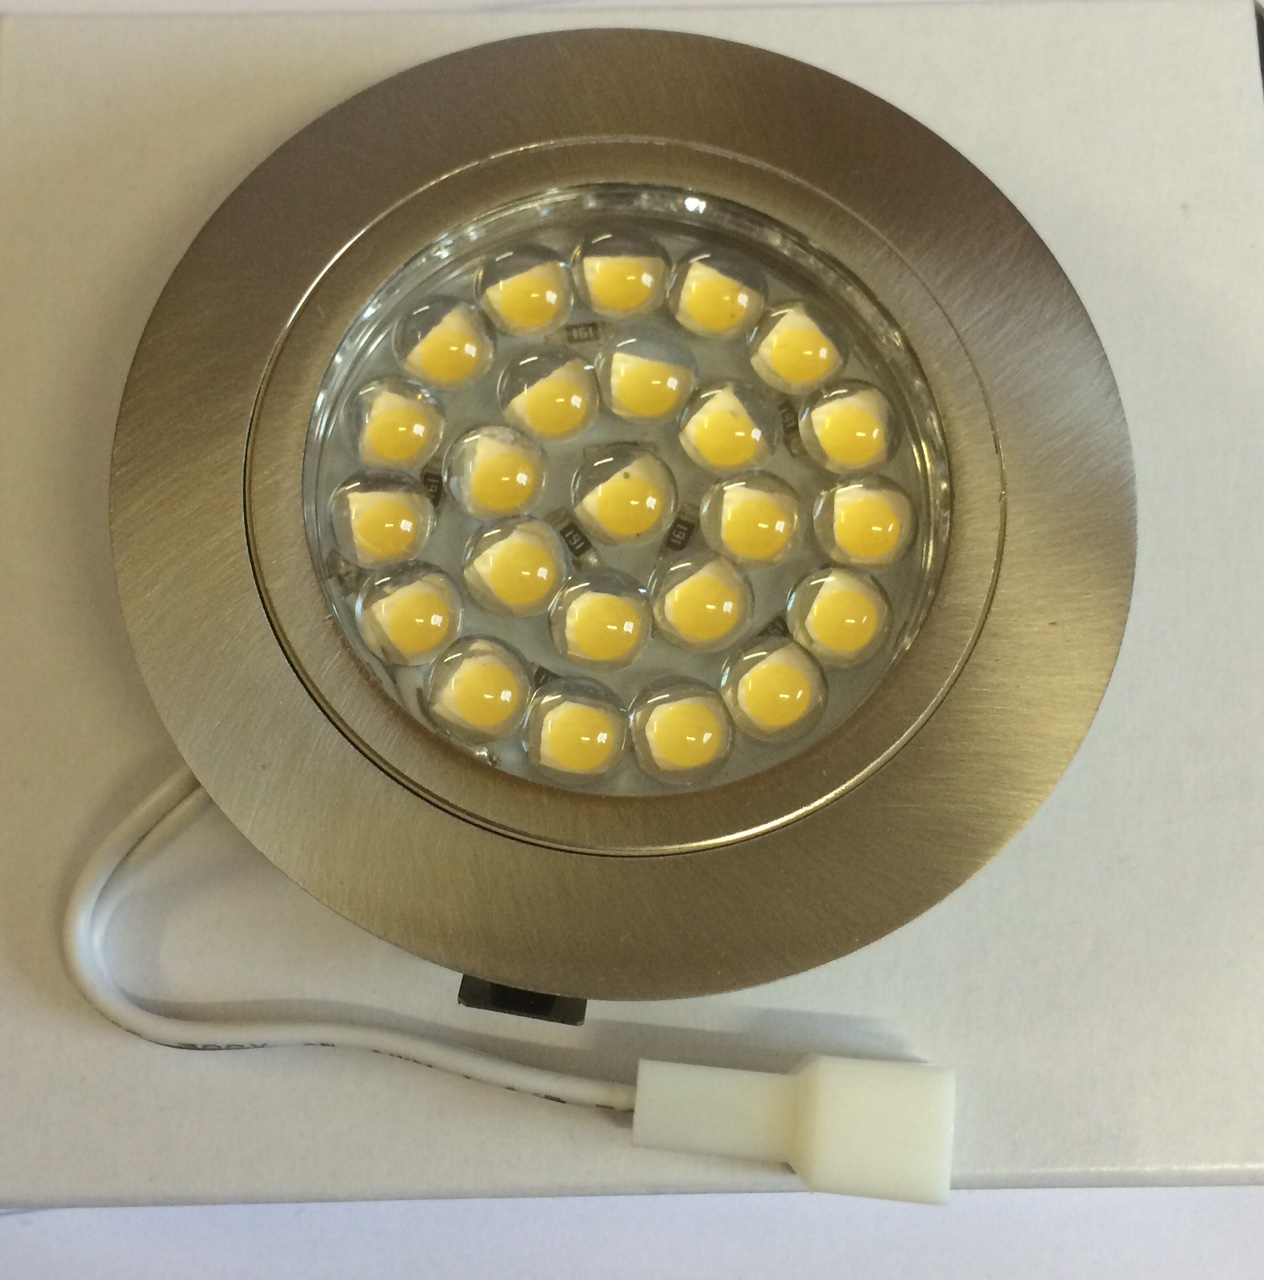 2 Watt 12 Volt Led Round Cabinet Light Fitting Kits Cool: 12v LED Round Recessed Spotlight